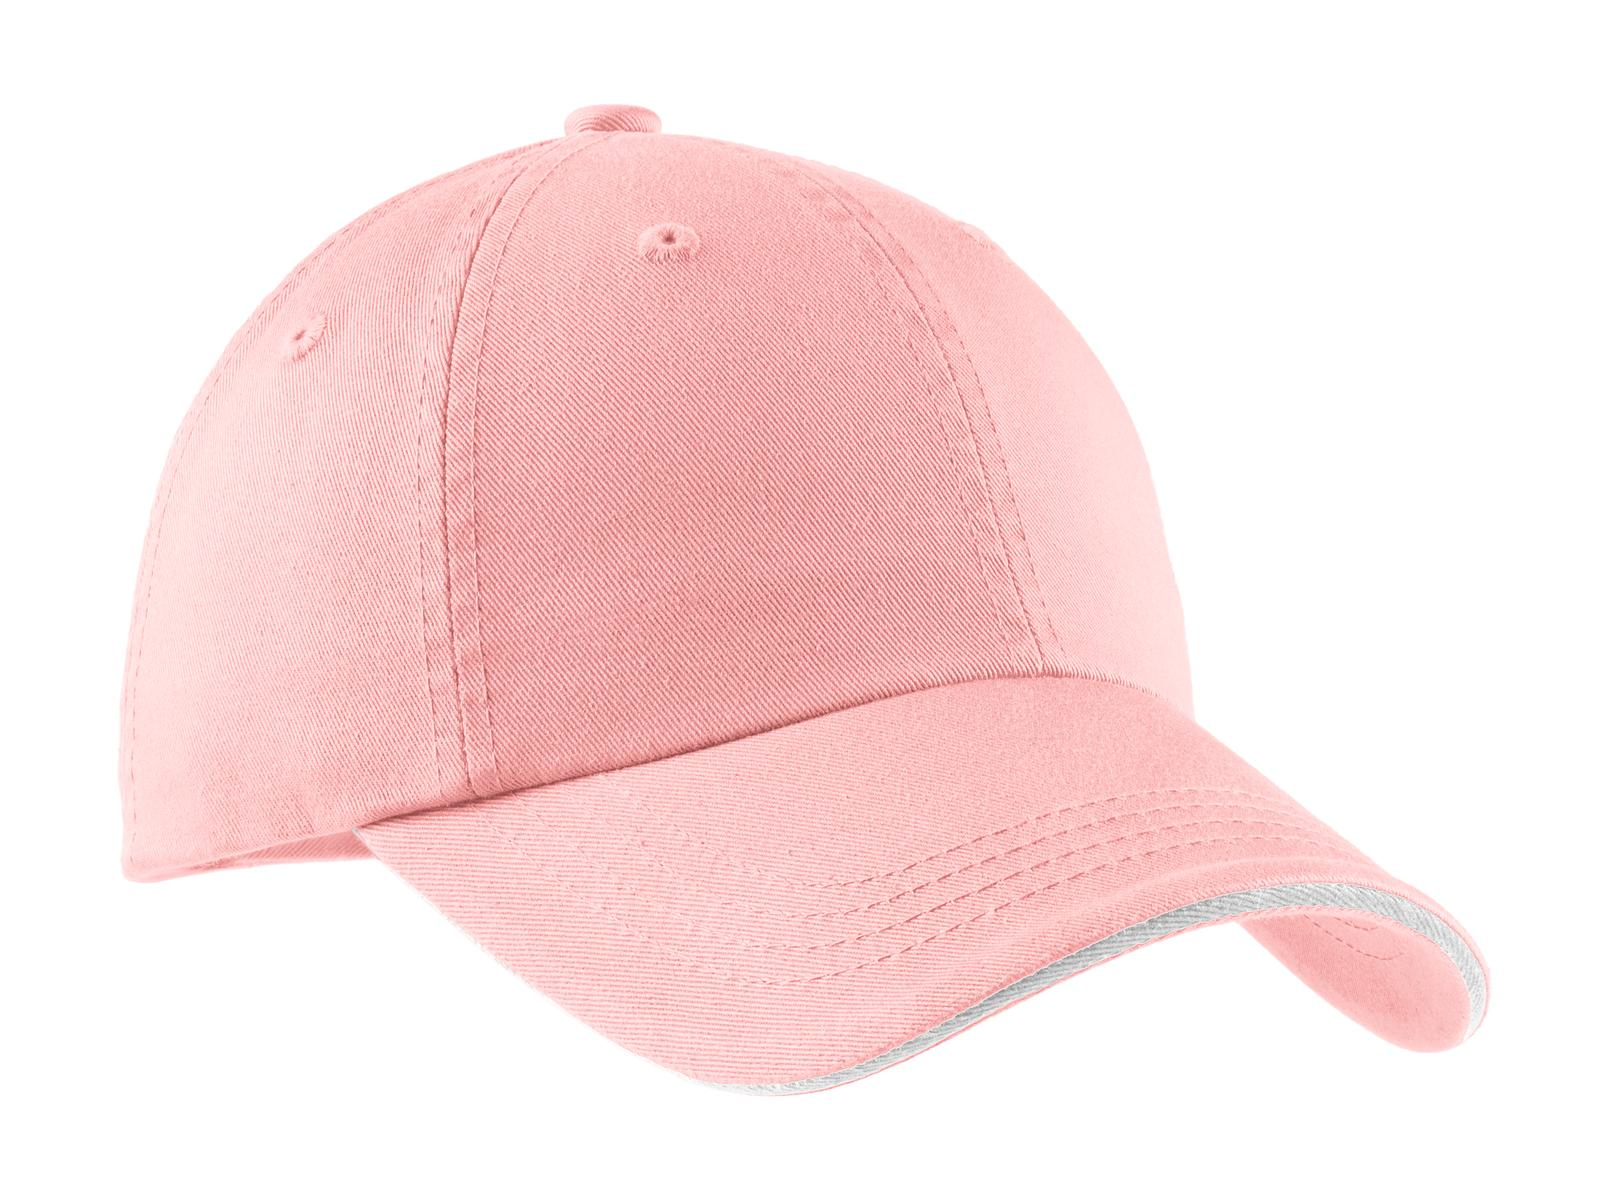 Port Authority ®  Sandwich Bill Cap with Striped Closure.  C830 - Light Pink/ White